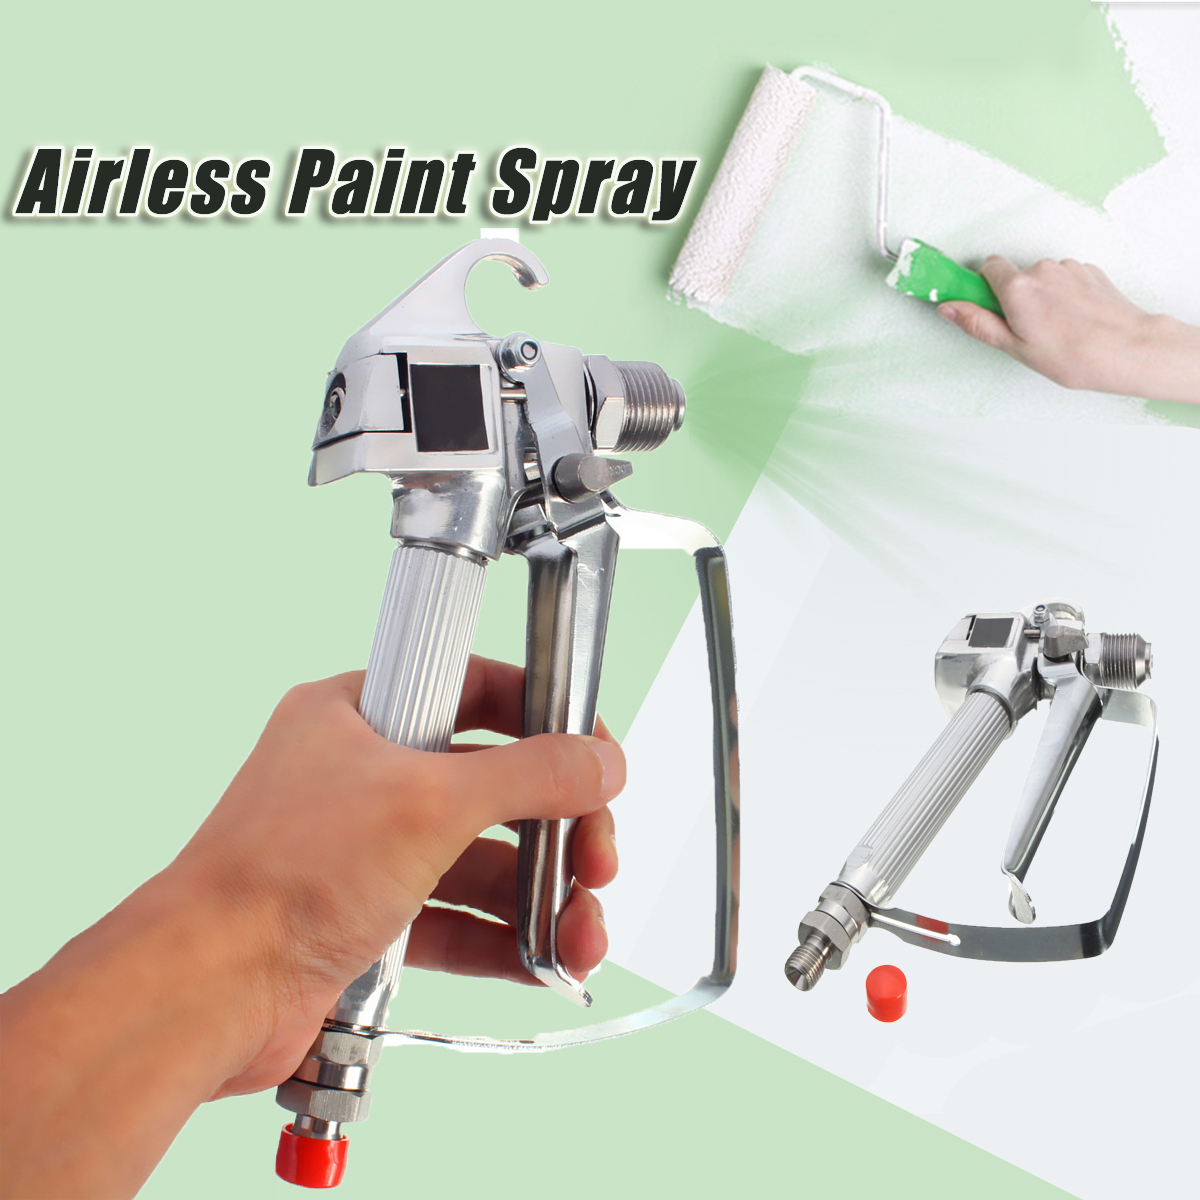 3600PSI High Pressure Airless Paint Spray Gun with Tip Guard For Titan Wagner Sprayers by